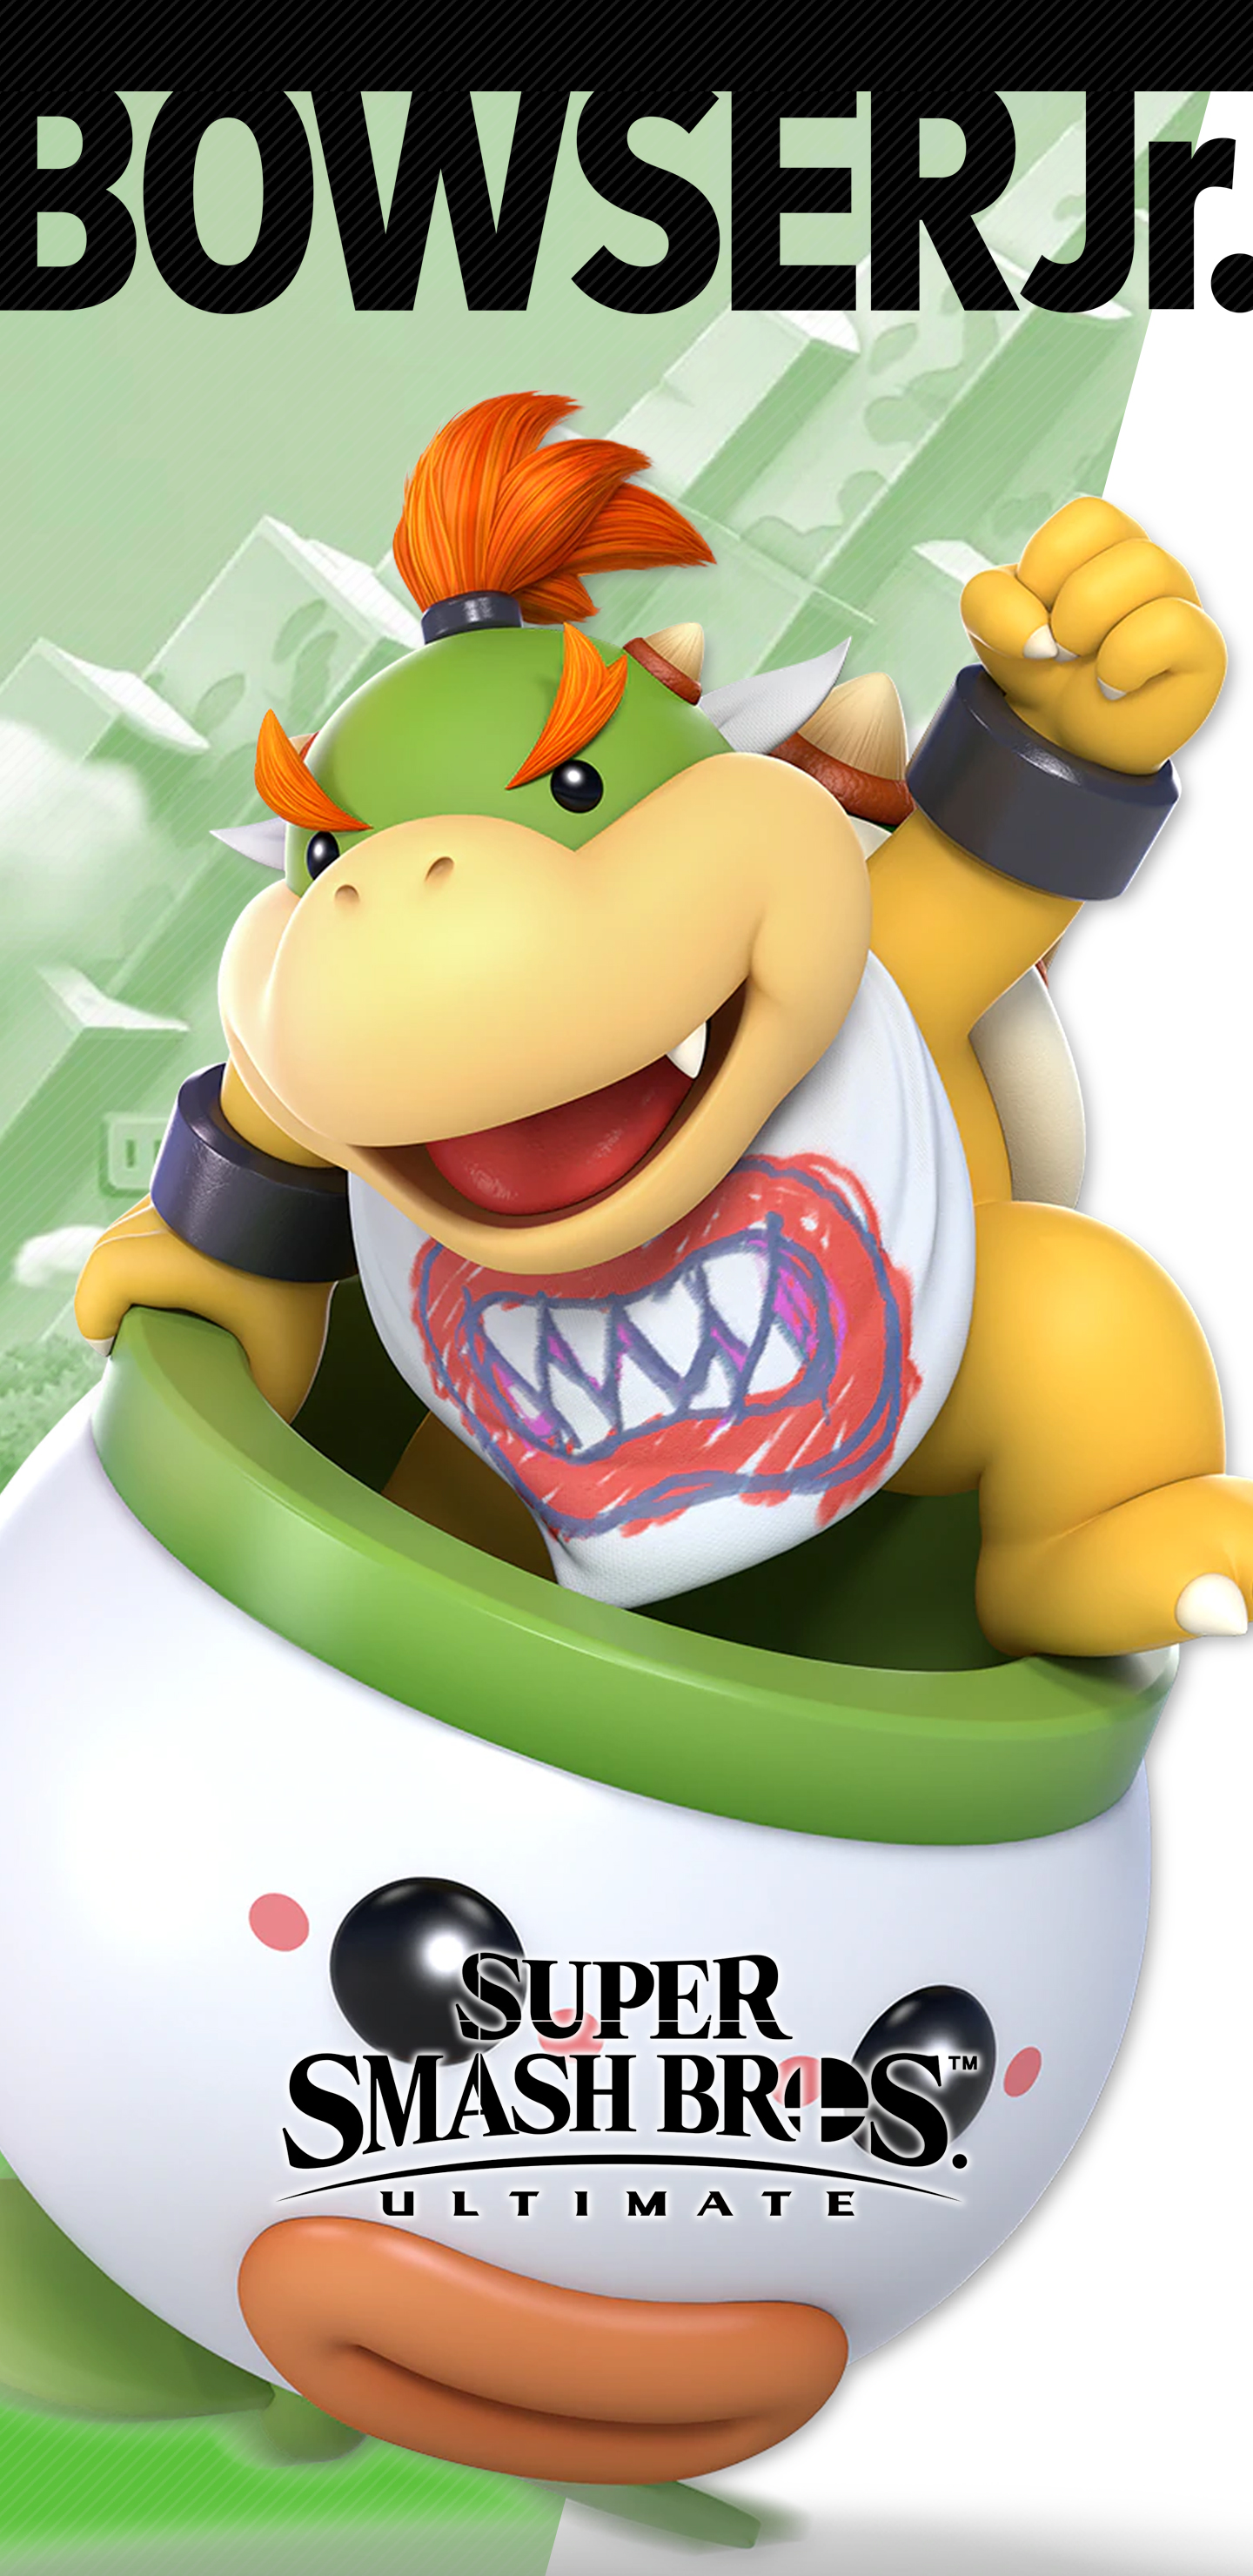 super smash bros ultimate bowser jr wallpapers cat with monocle